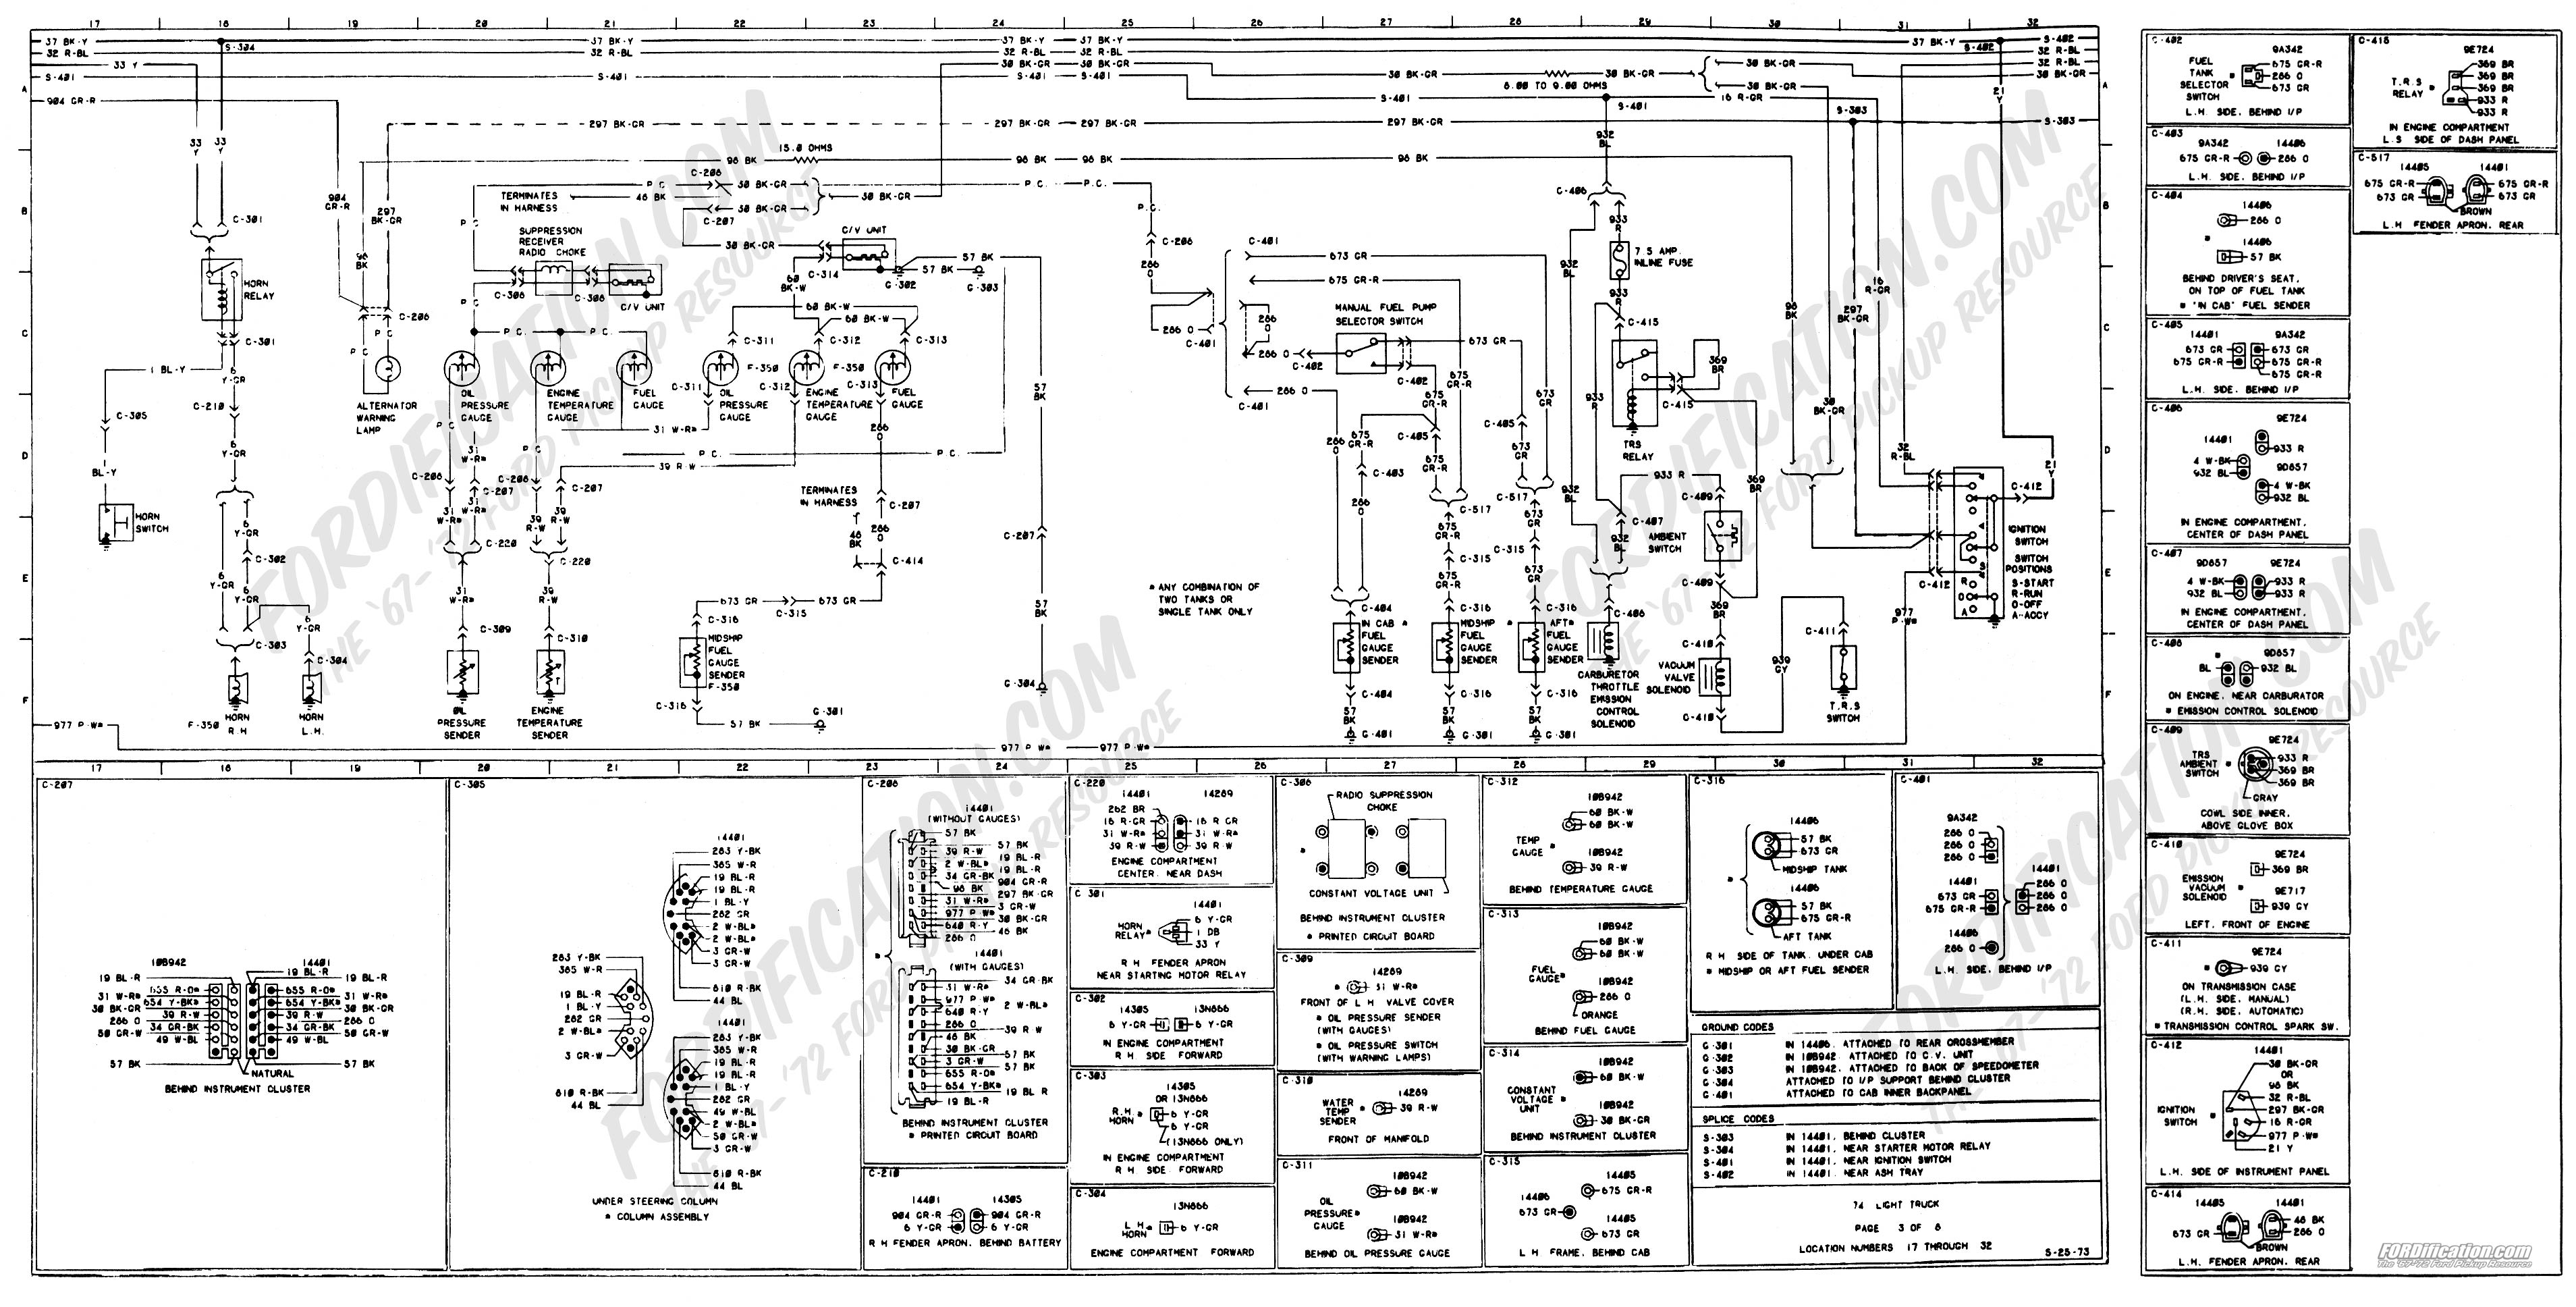 wiring_74master_3of8 1973 1979 ford truck wiring diagrams & schematics fordification net 1994 ford f150 wiring schematics at webbmarketing.co